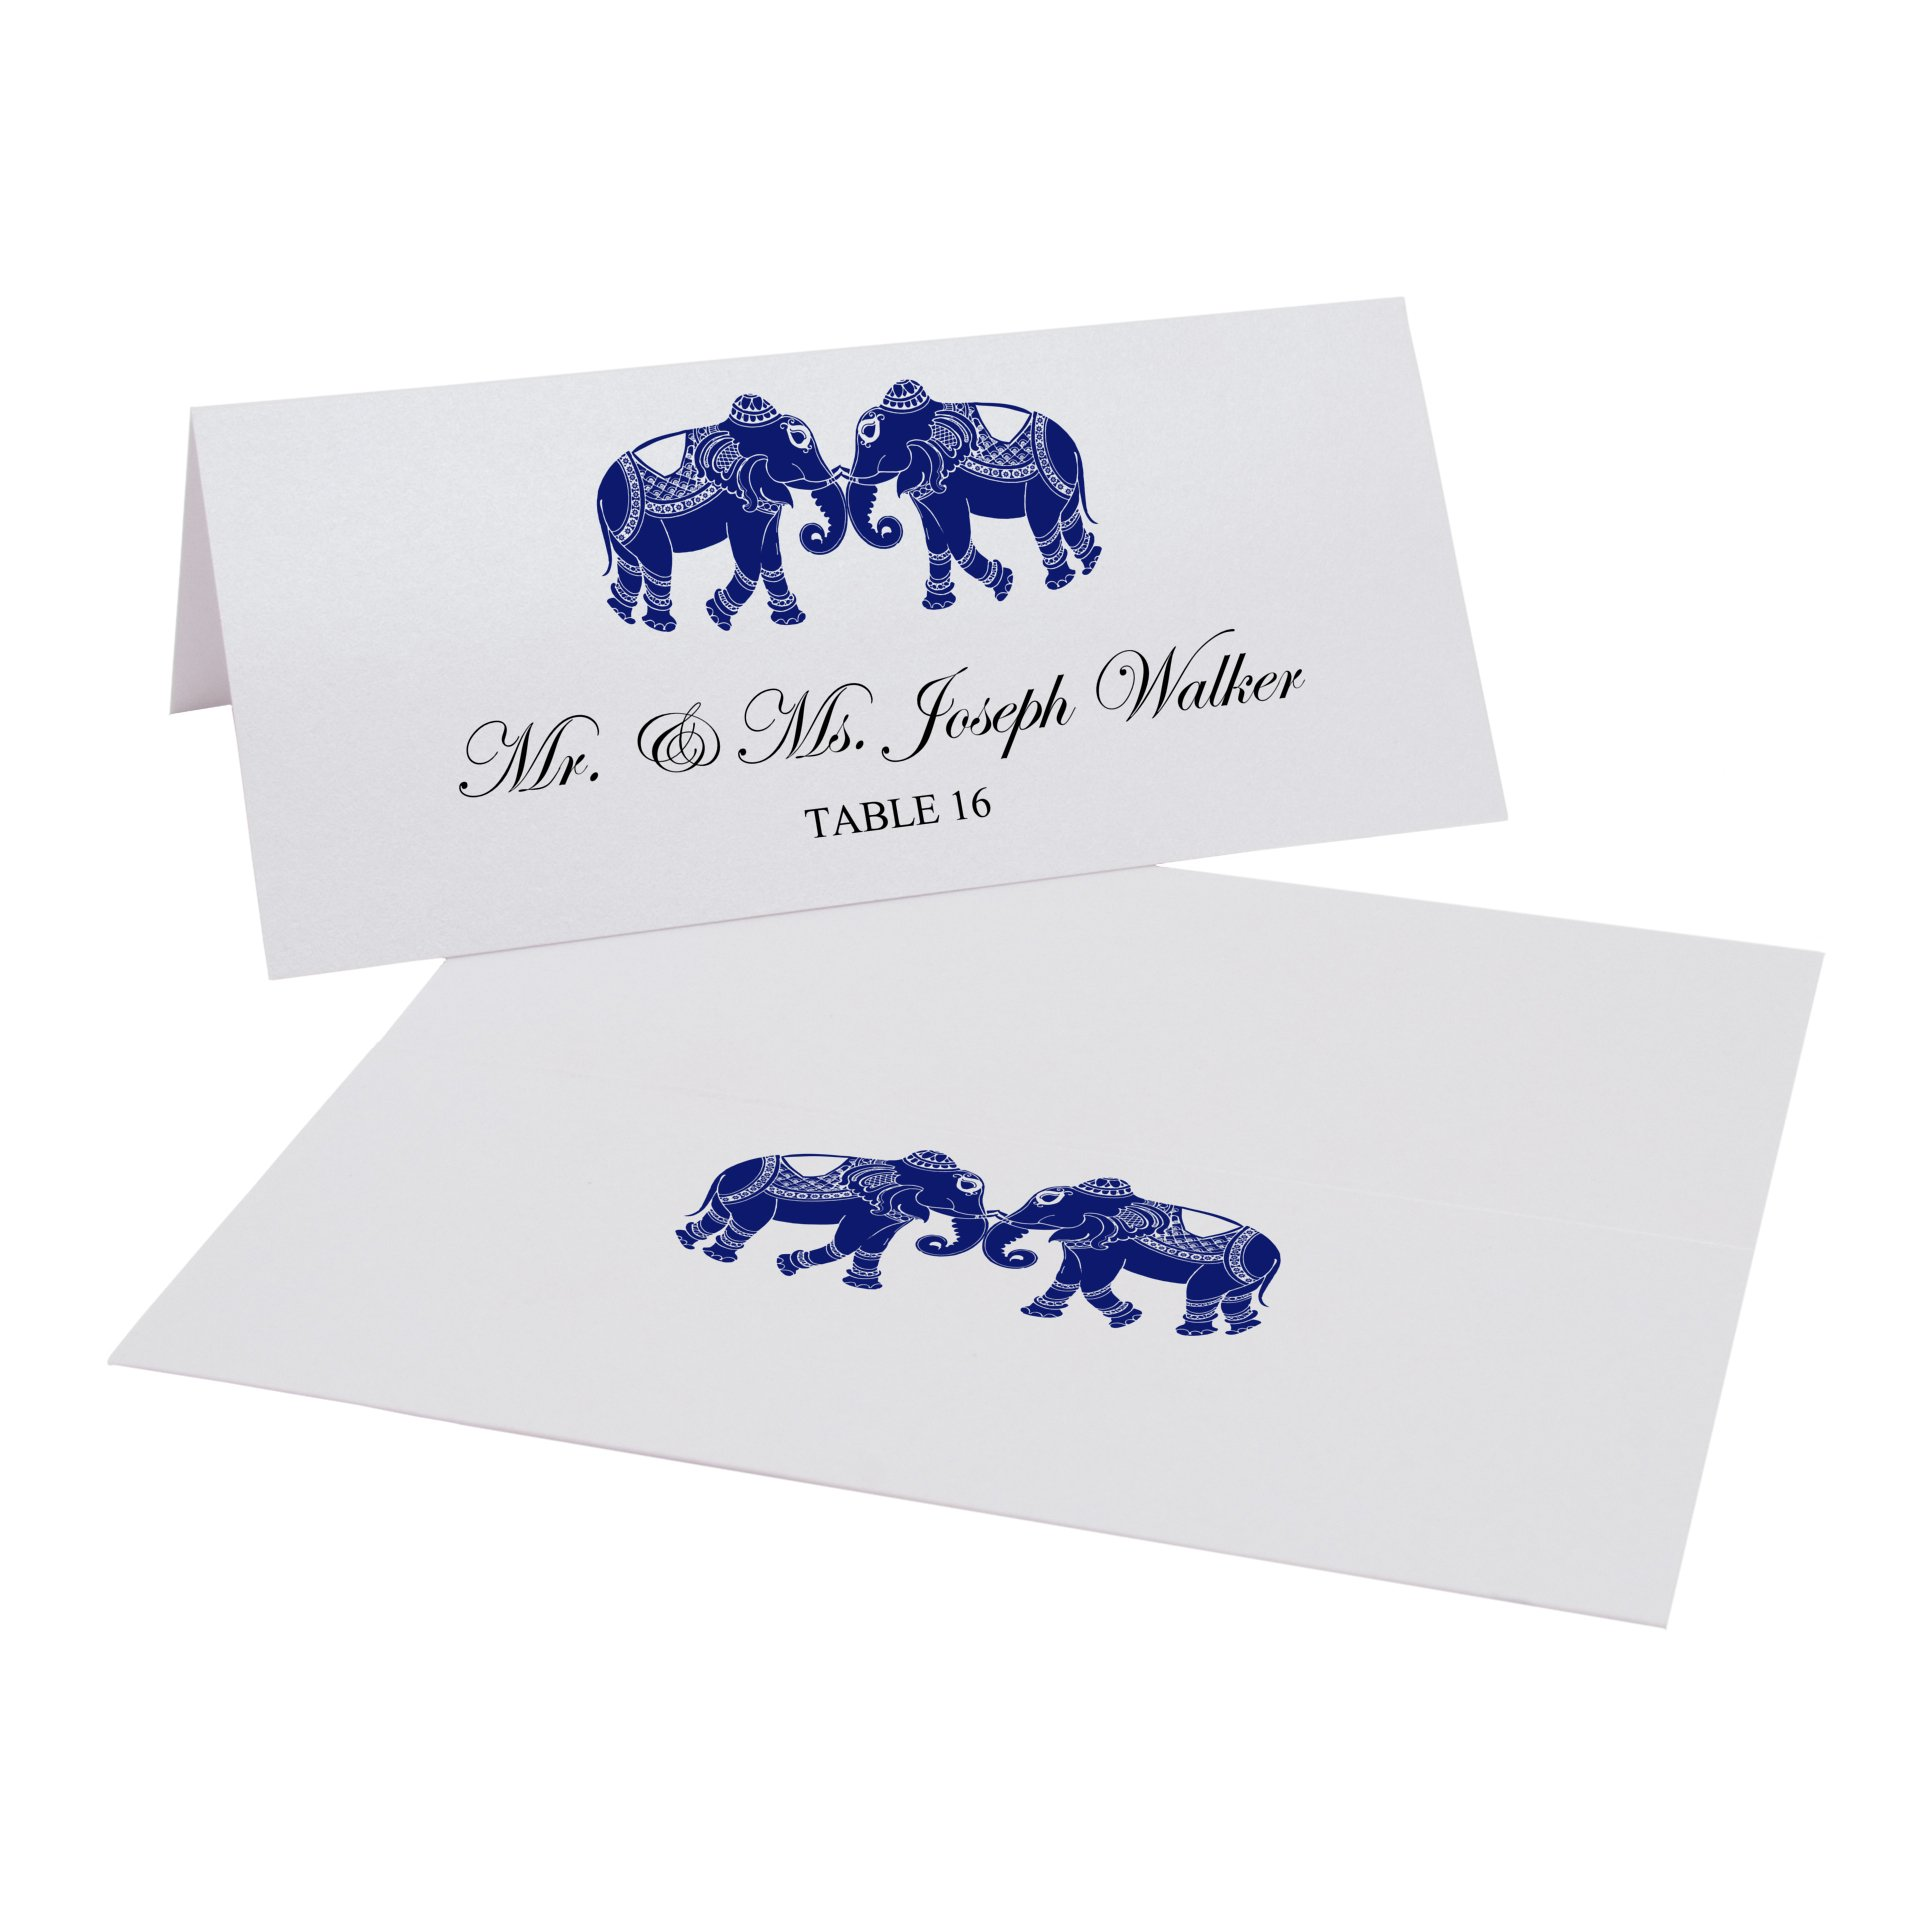 Indian Elephants Easy Print Place Cards, Pearl White, Navy, Set of 300 (75 Sheets) by Documents and Designs